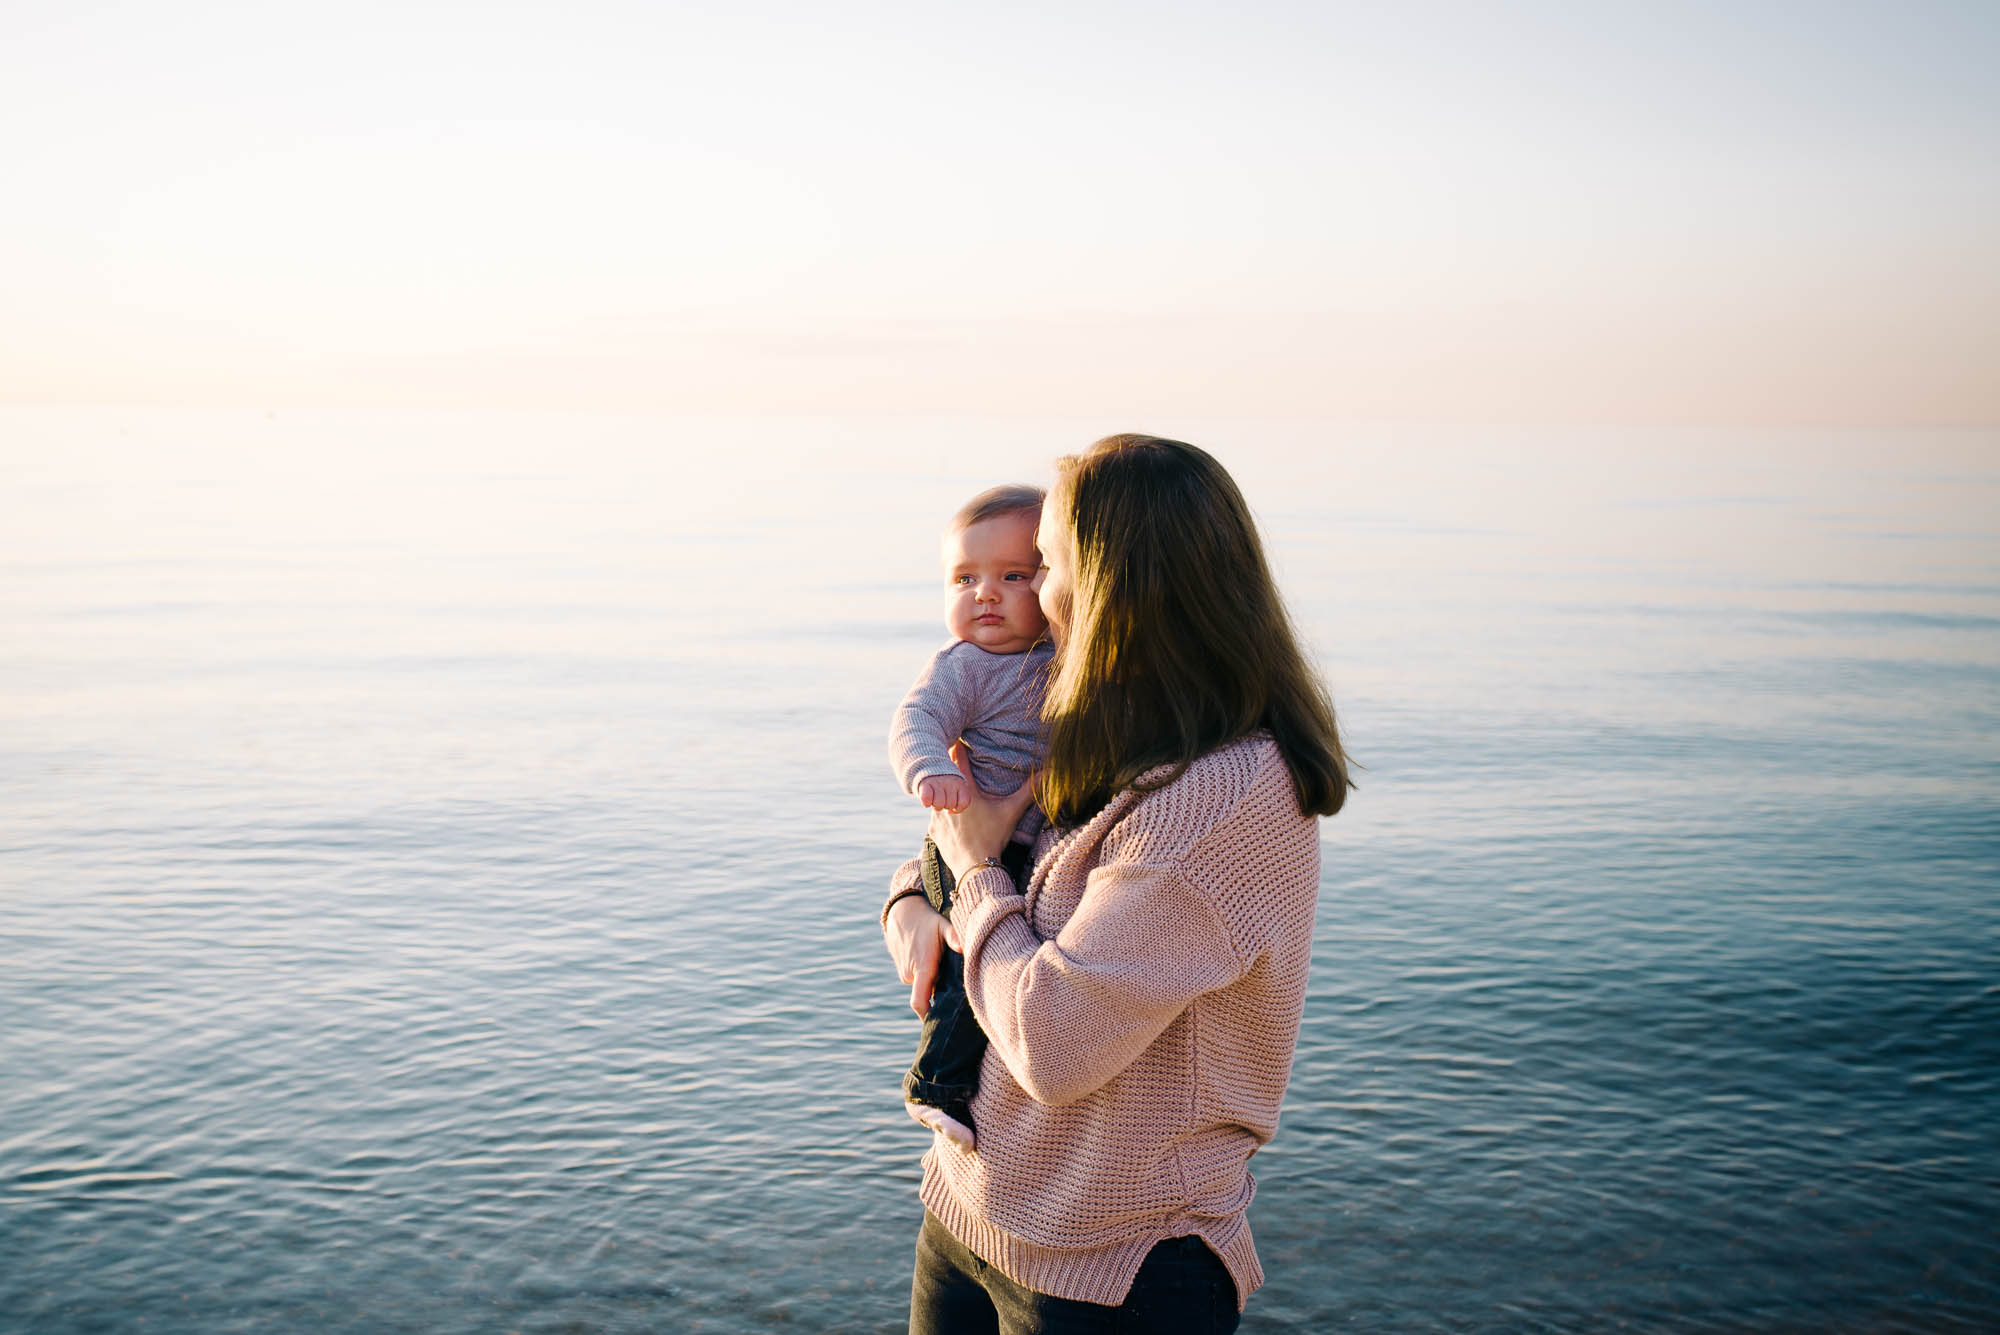 mum_at_the_beach_holidng_her_baby_at_sunset_melbourne_family_photographer-1.jpg